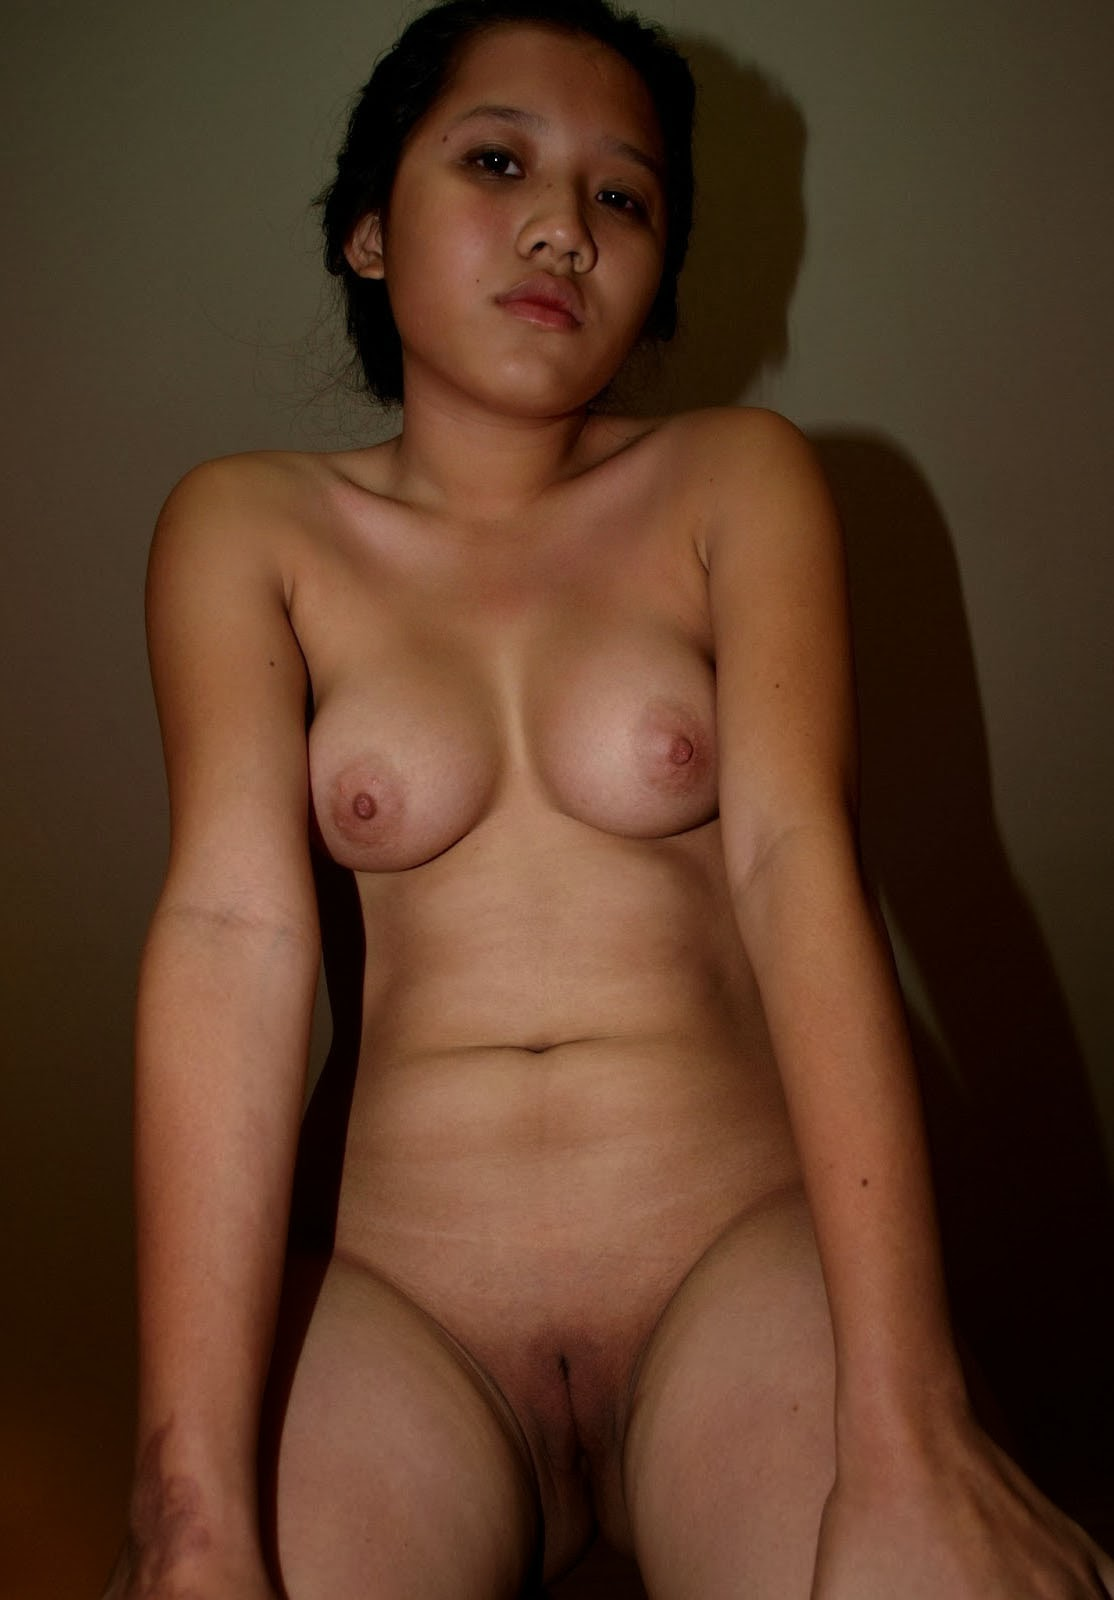 Cute Indonesian Teen Girl Naked Self Photos  Ngentot Cabe -8213